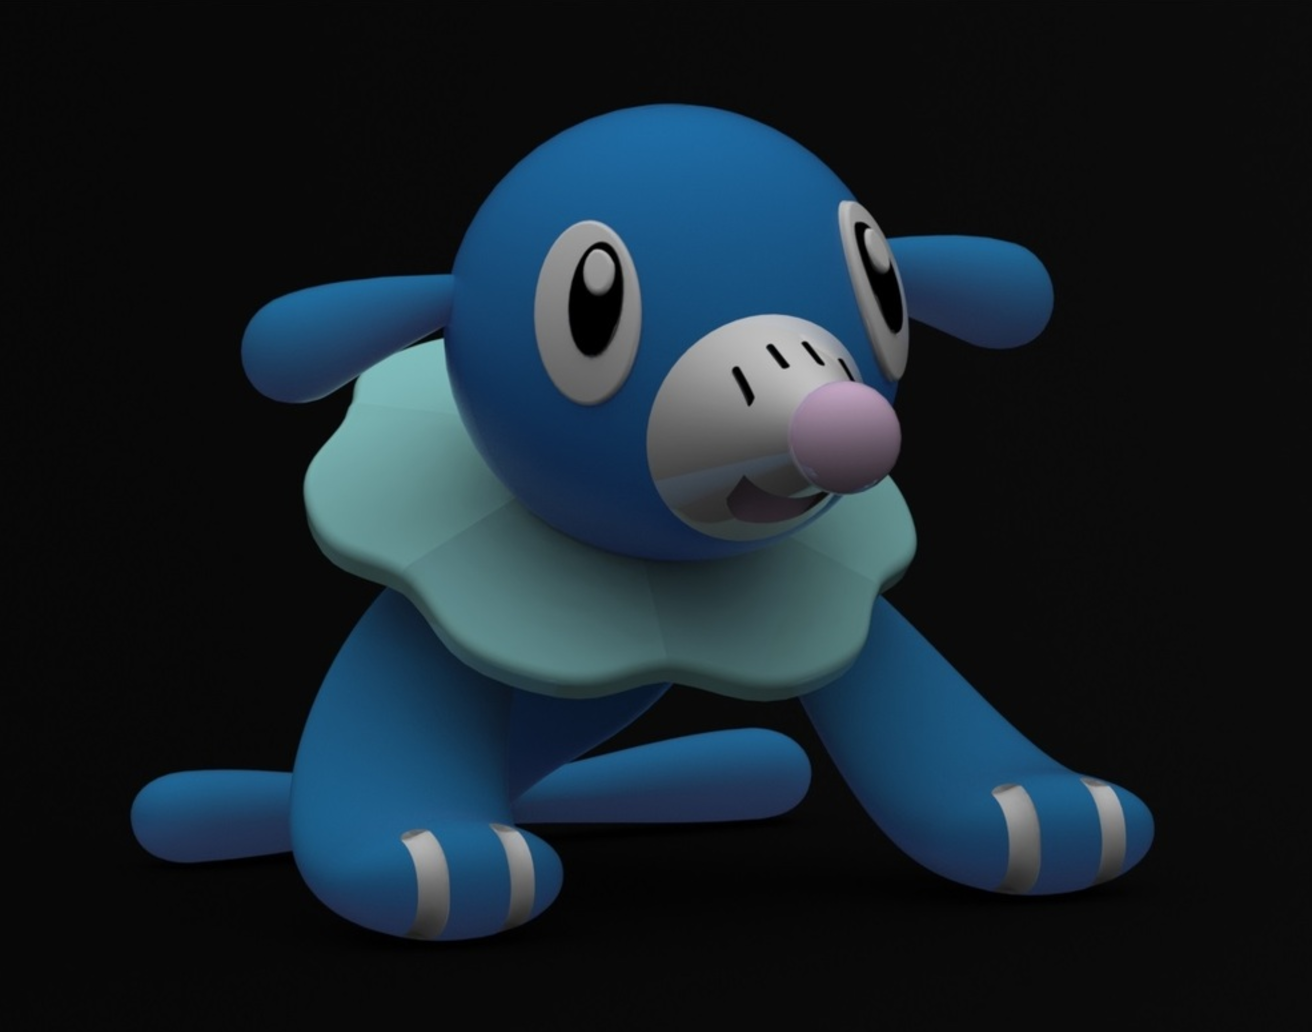 Capture d'écran 2016-12-26 à 18.04.21.png Download free STL file Popplio • Object to 3D print, Philin_theBlank